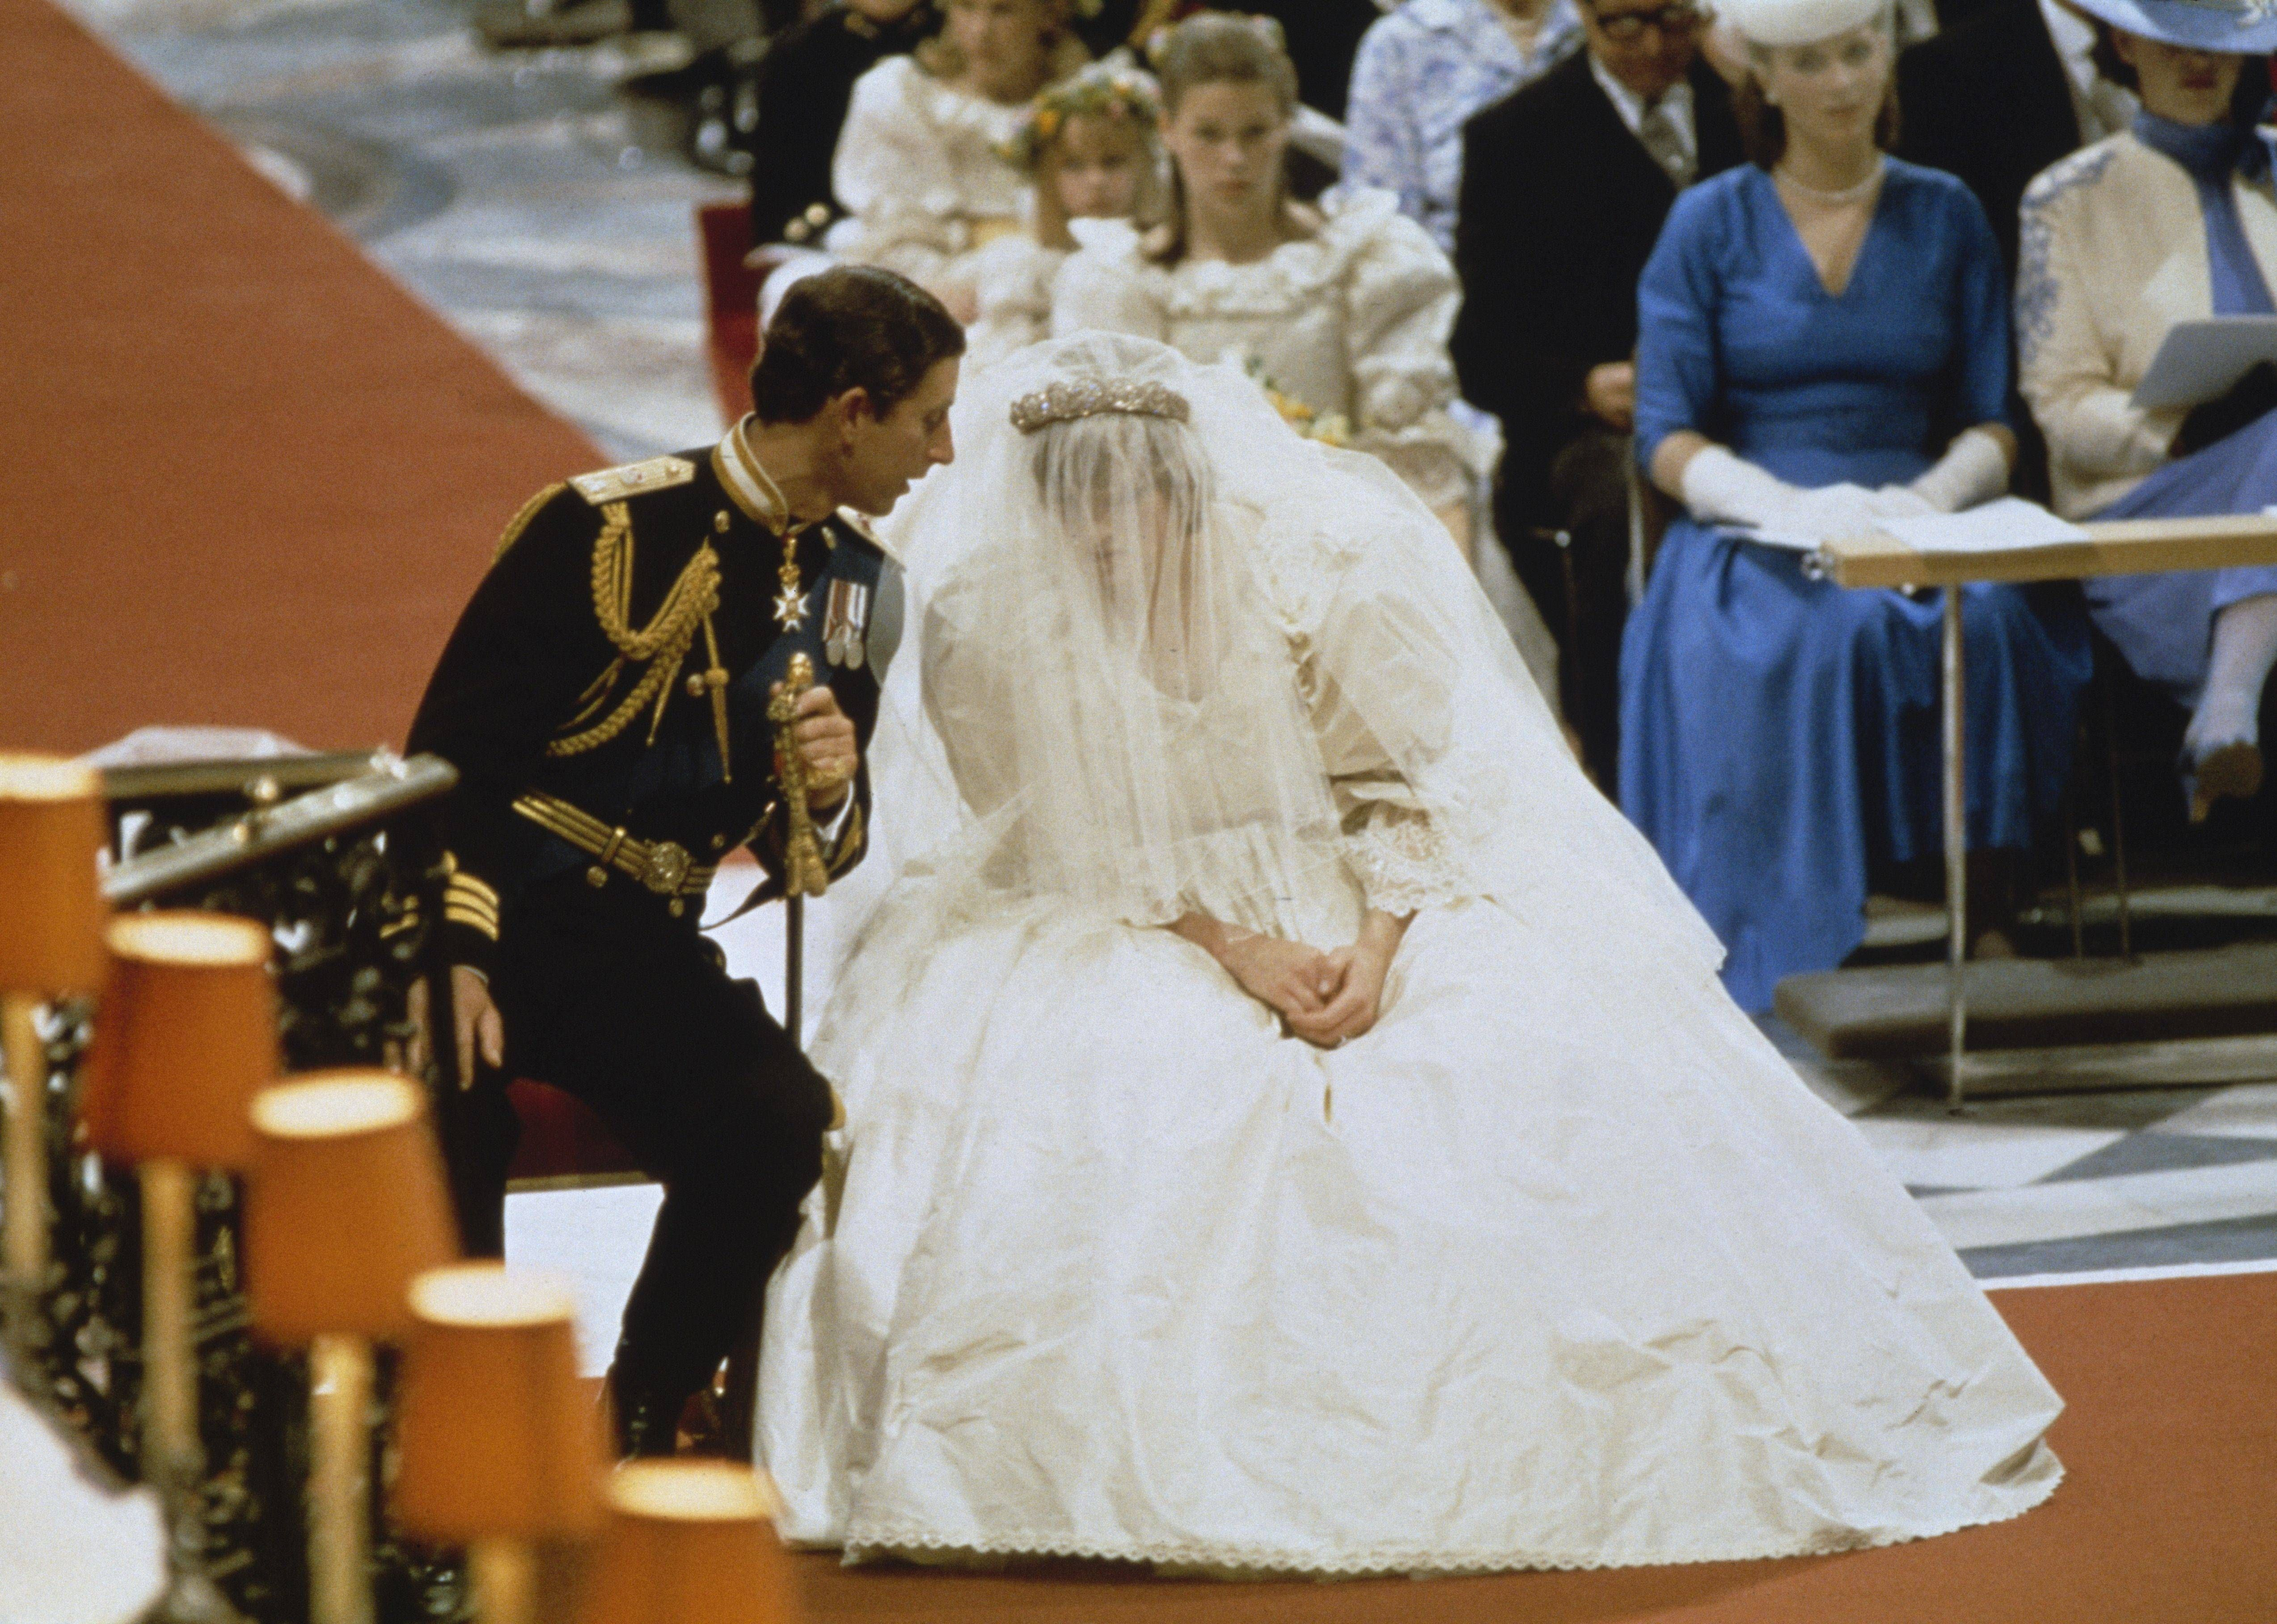 Princess Diana Marries Prince Charles Photographs From The Wedding Of Spencer To Wales In